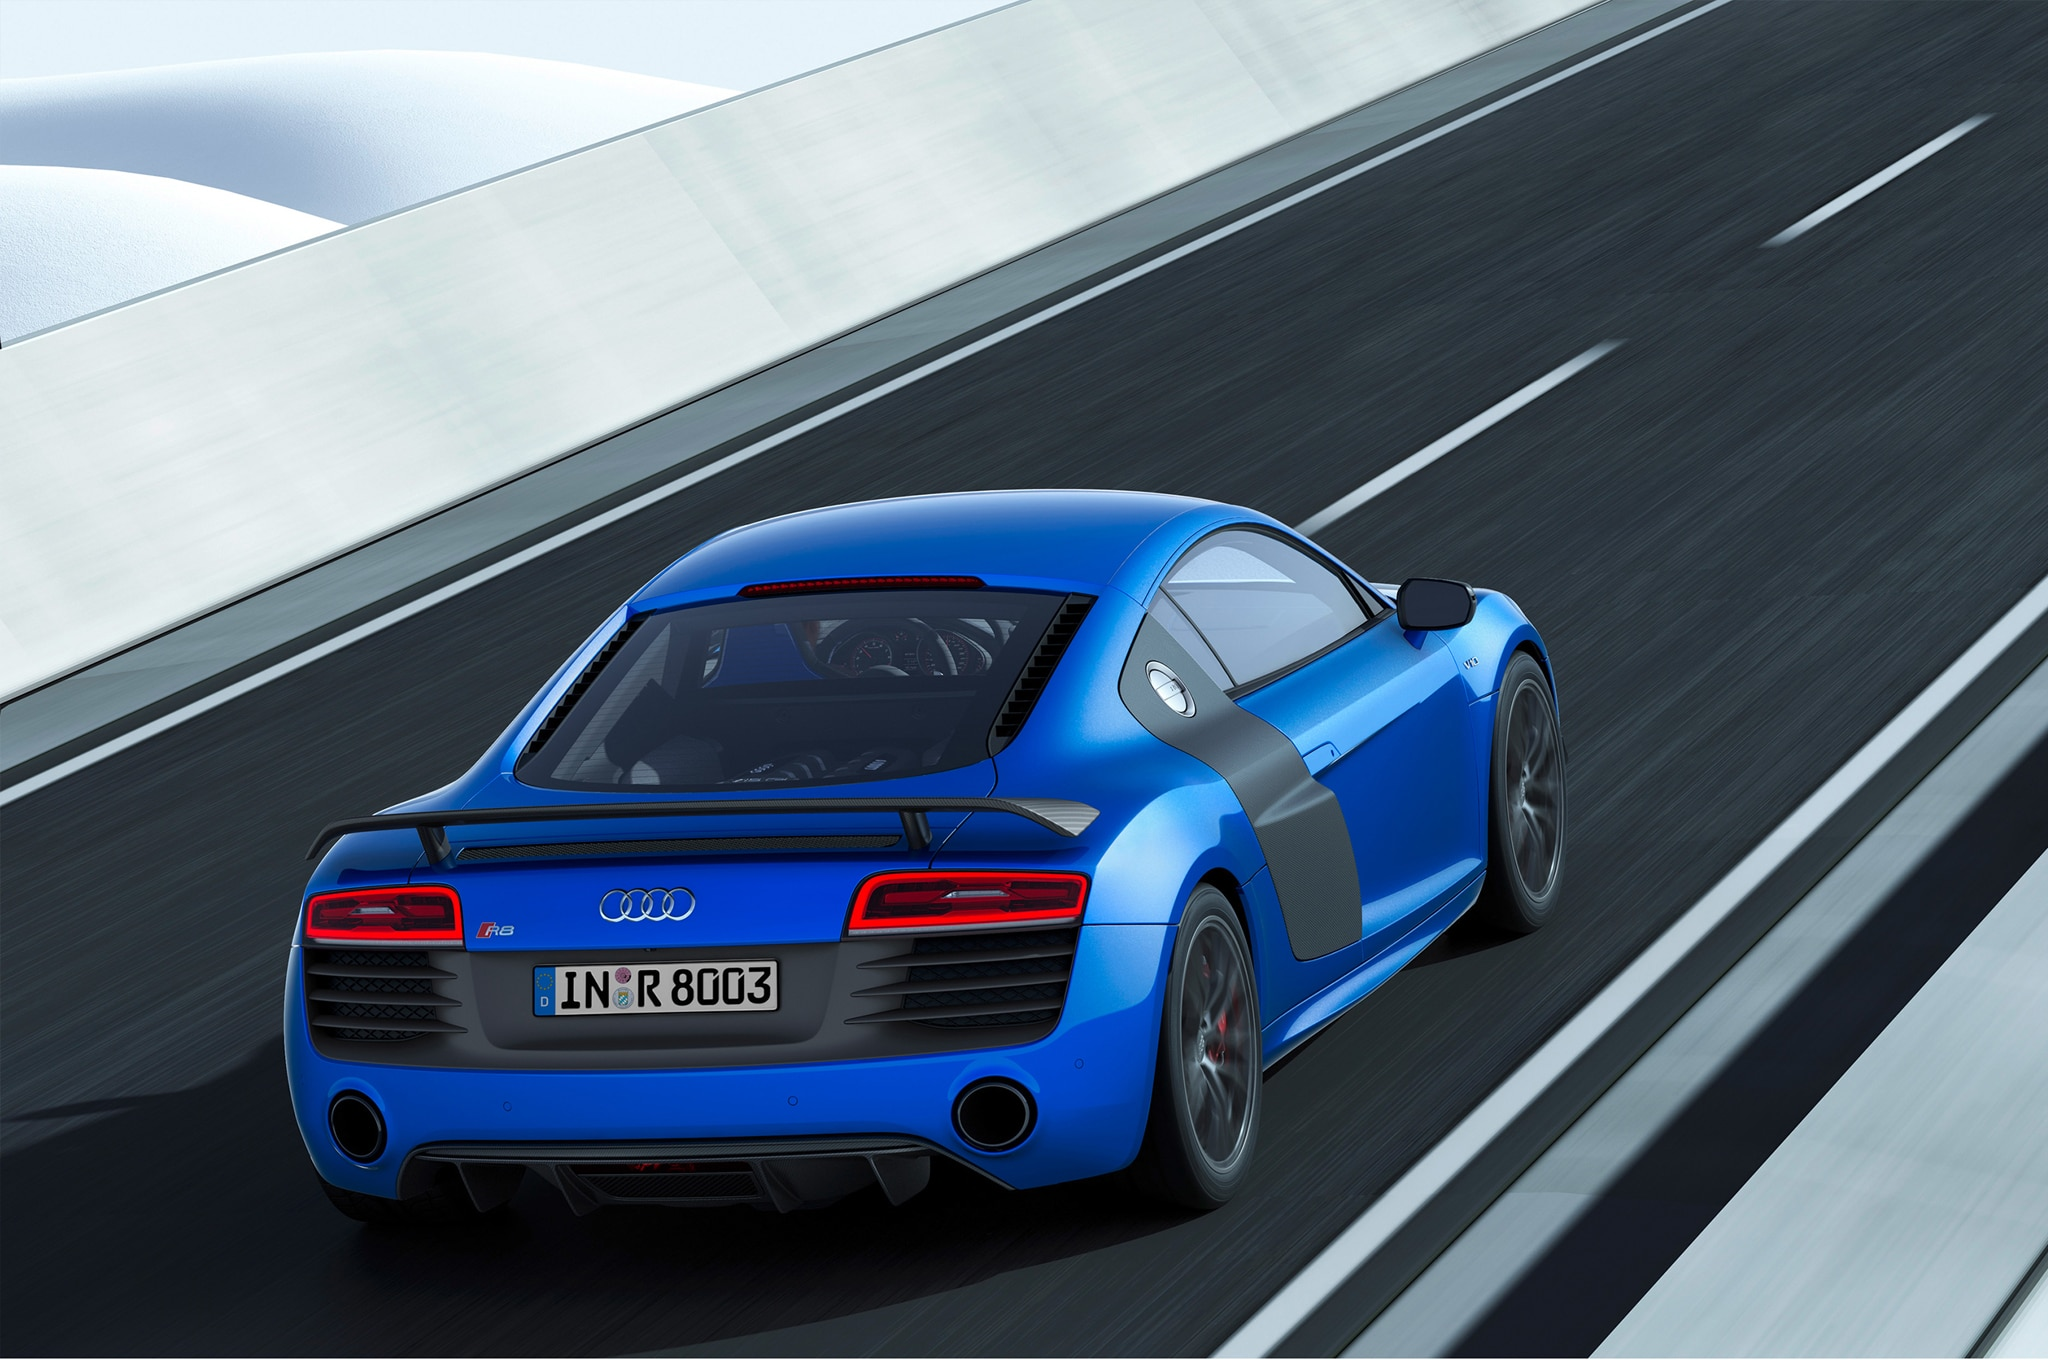 In addition to the upgraded lighting technology the 2014 audi r8 lmx